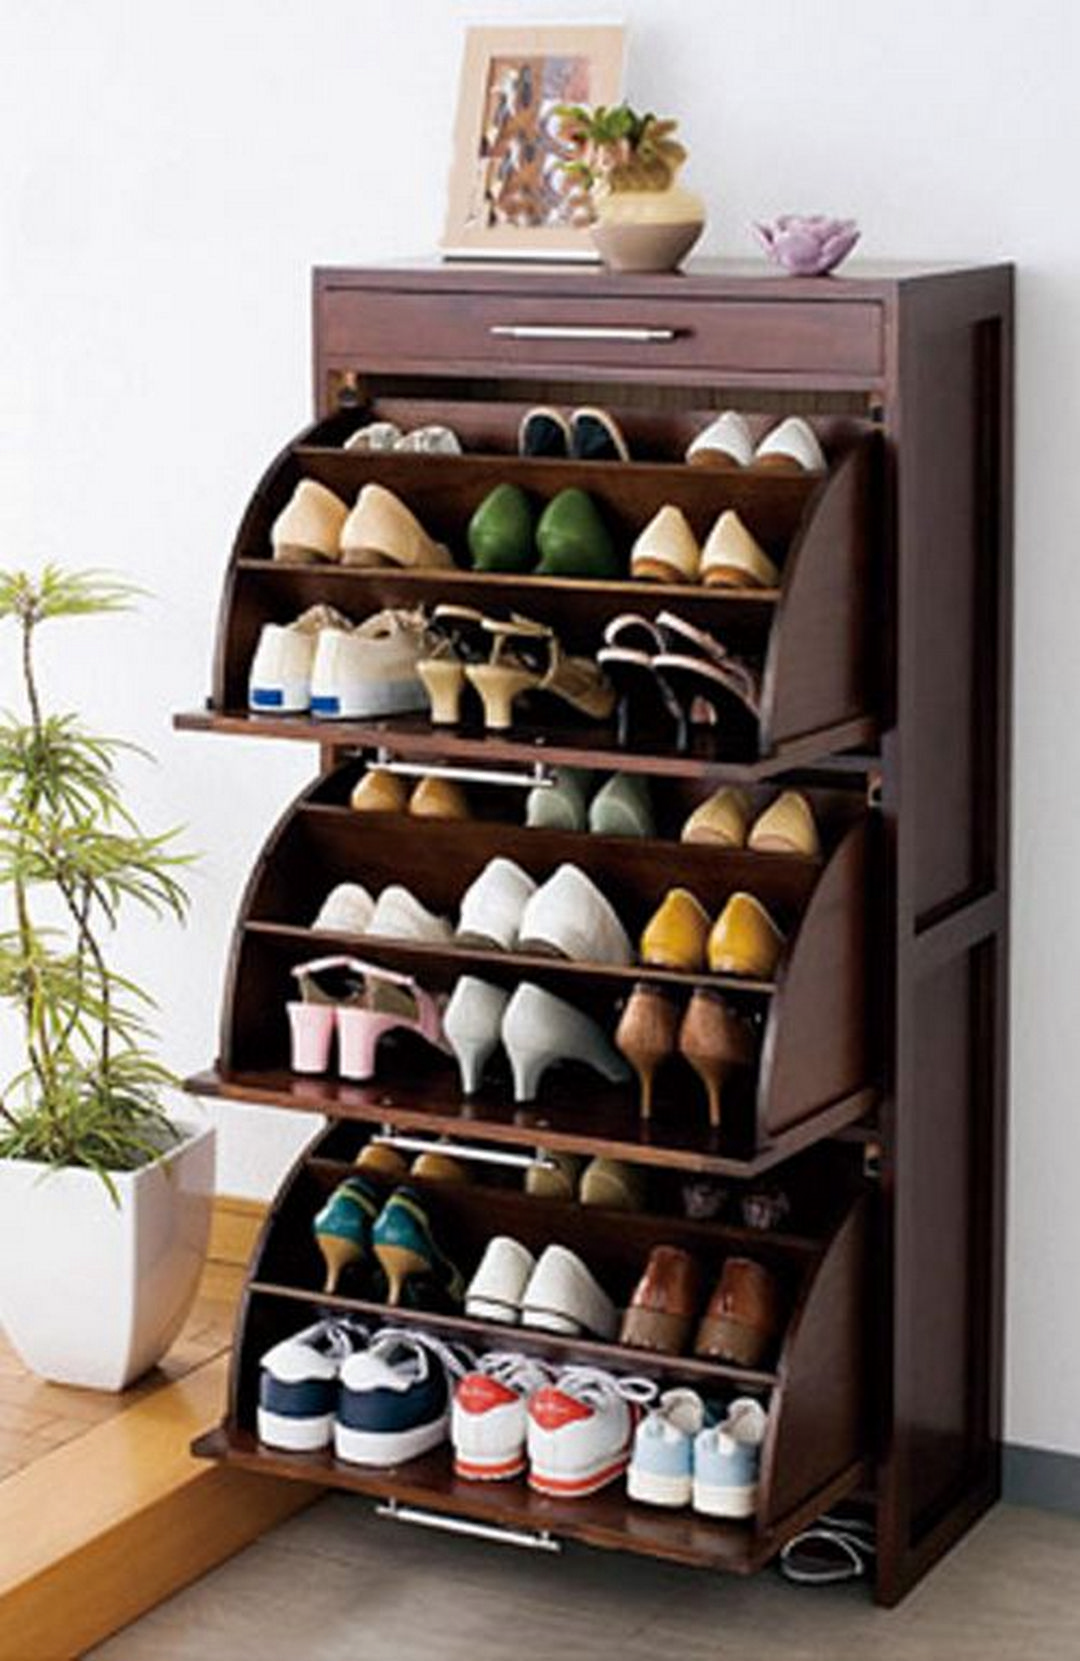 Practical Shoes Rack Design Ideas For Small Homes Shoe Storage